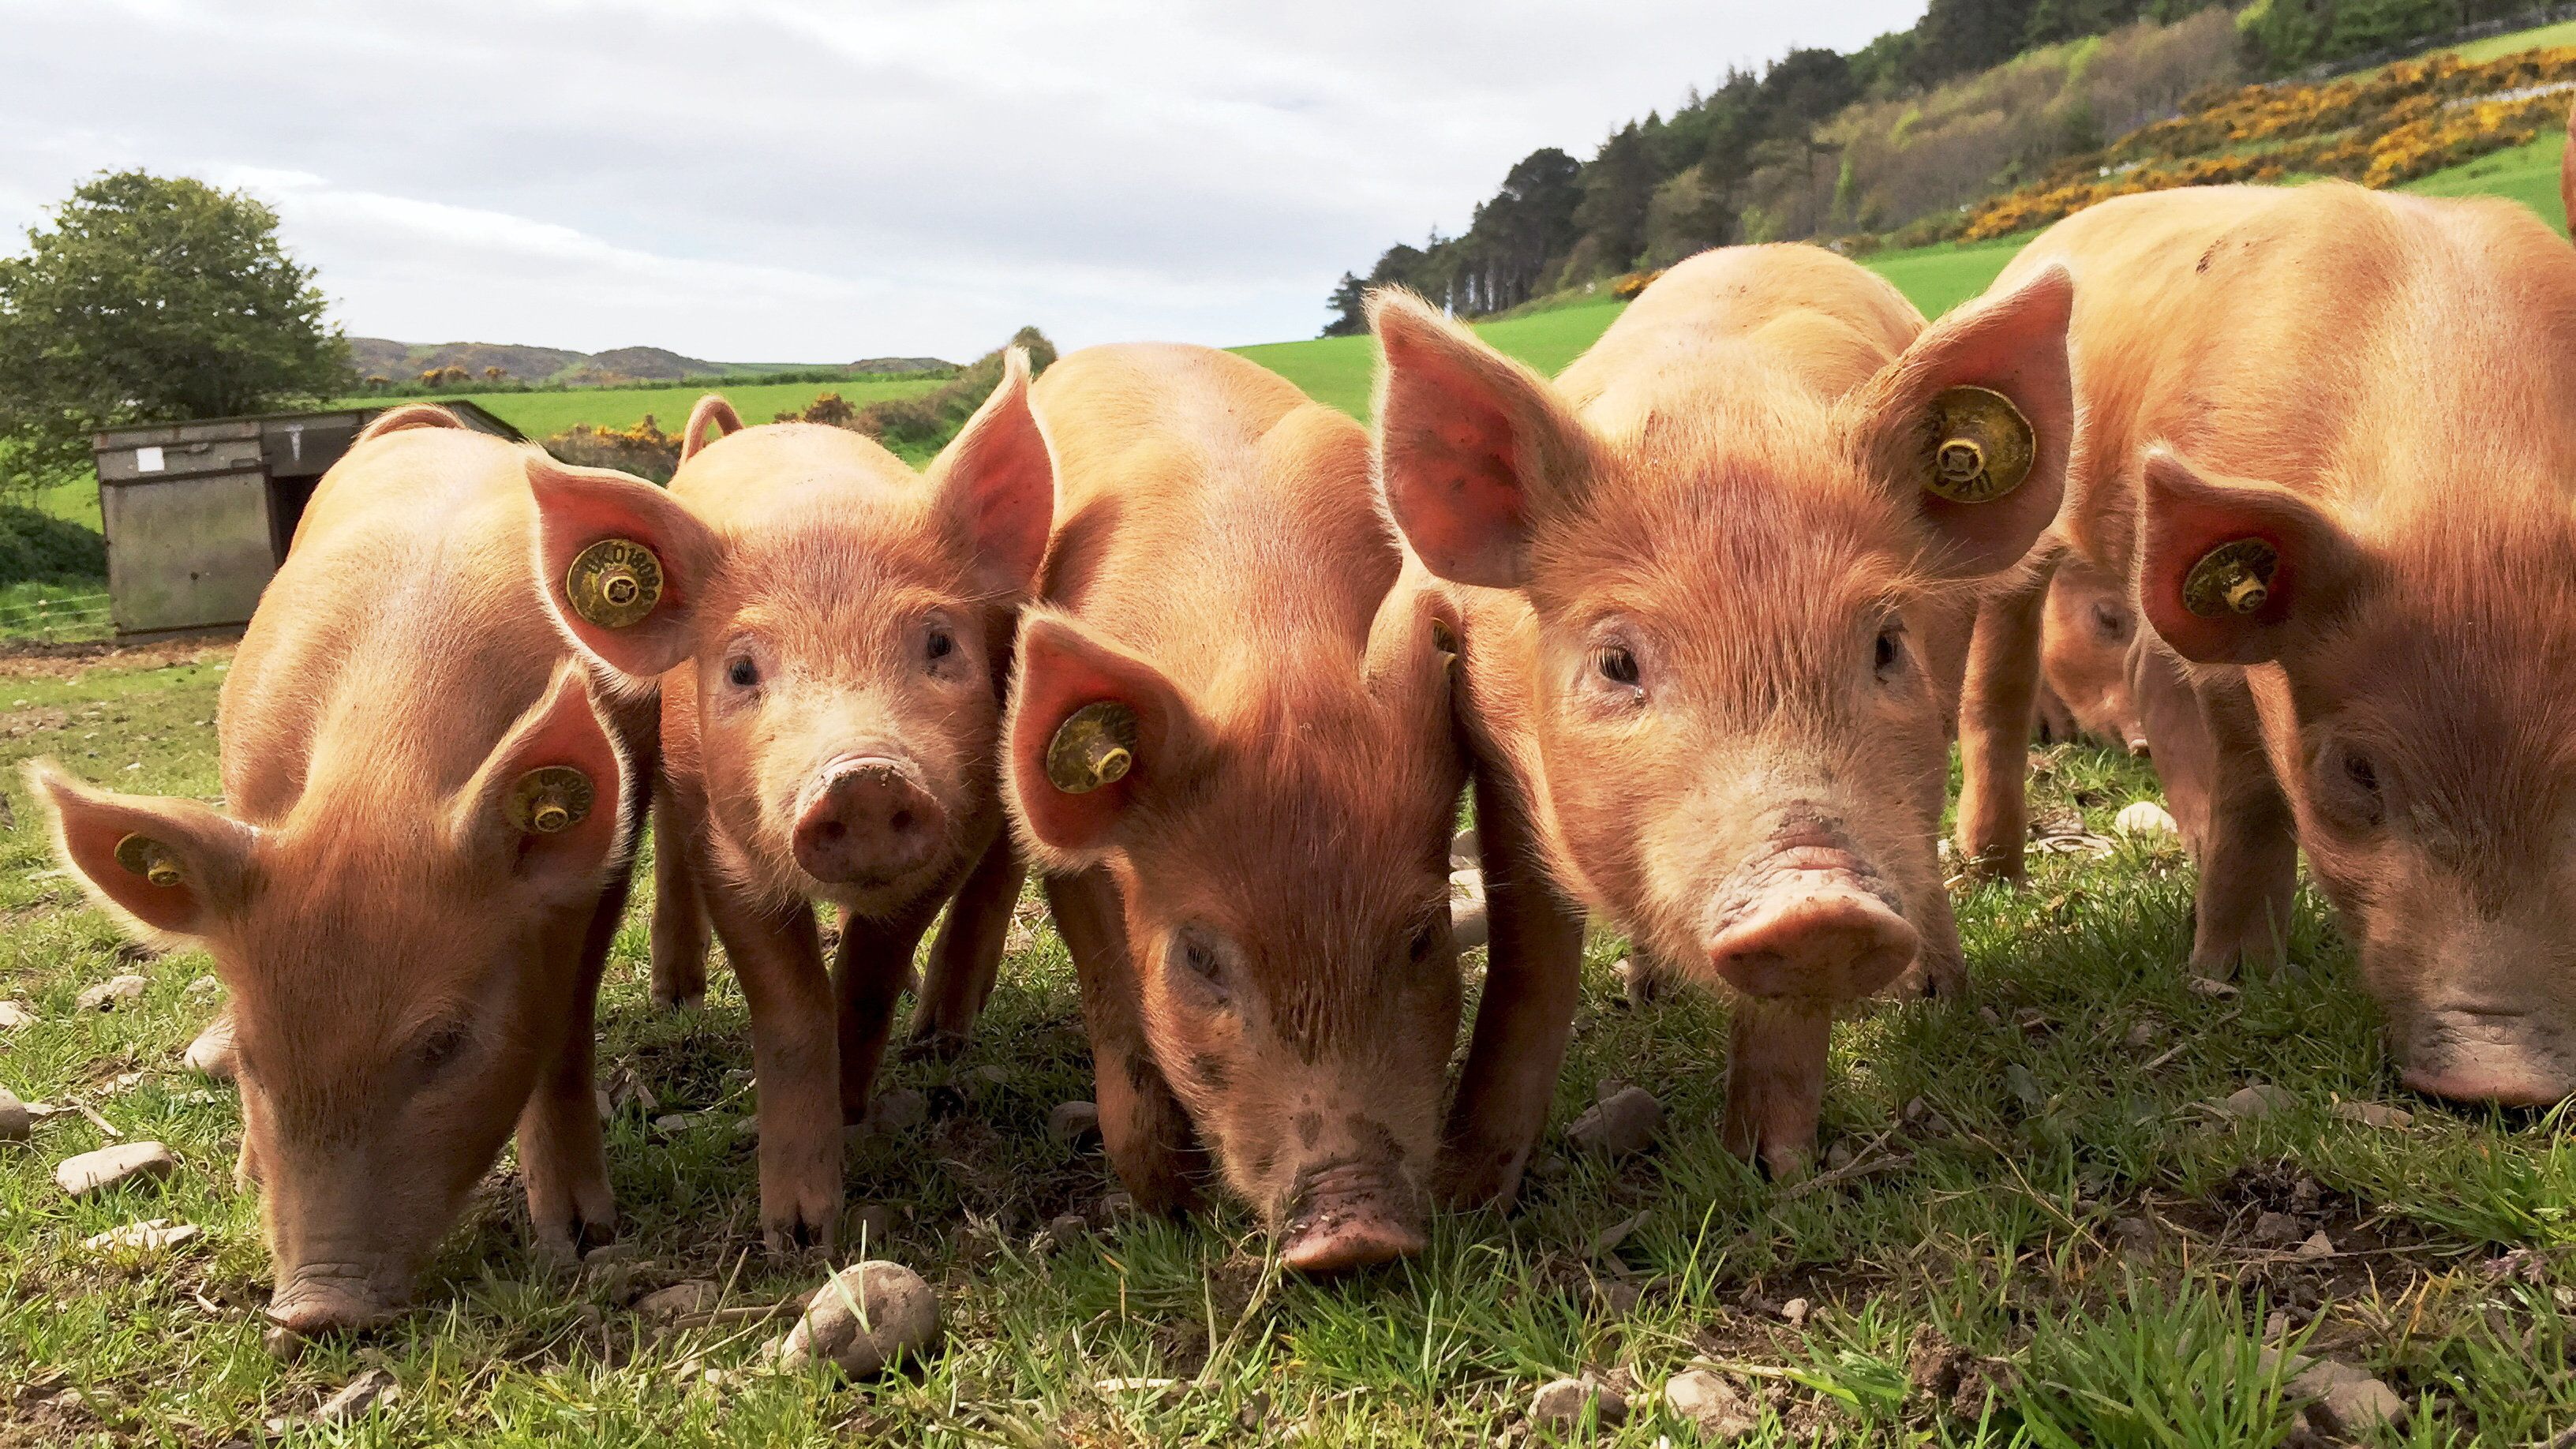 Down, Up, Down, Up, DownSynchronised piglets in a row in Isle of Man, United Kingdom. Photo by: Bruno Guerreiro